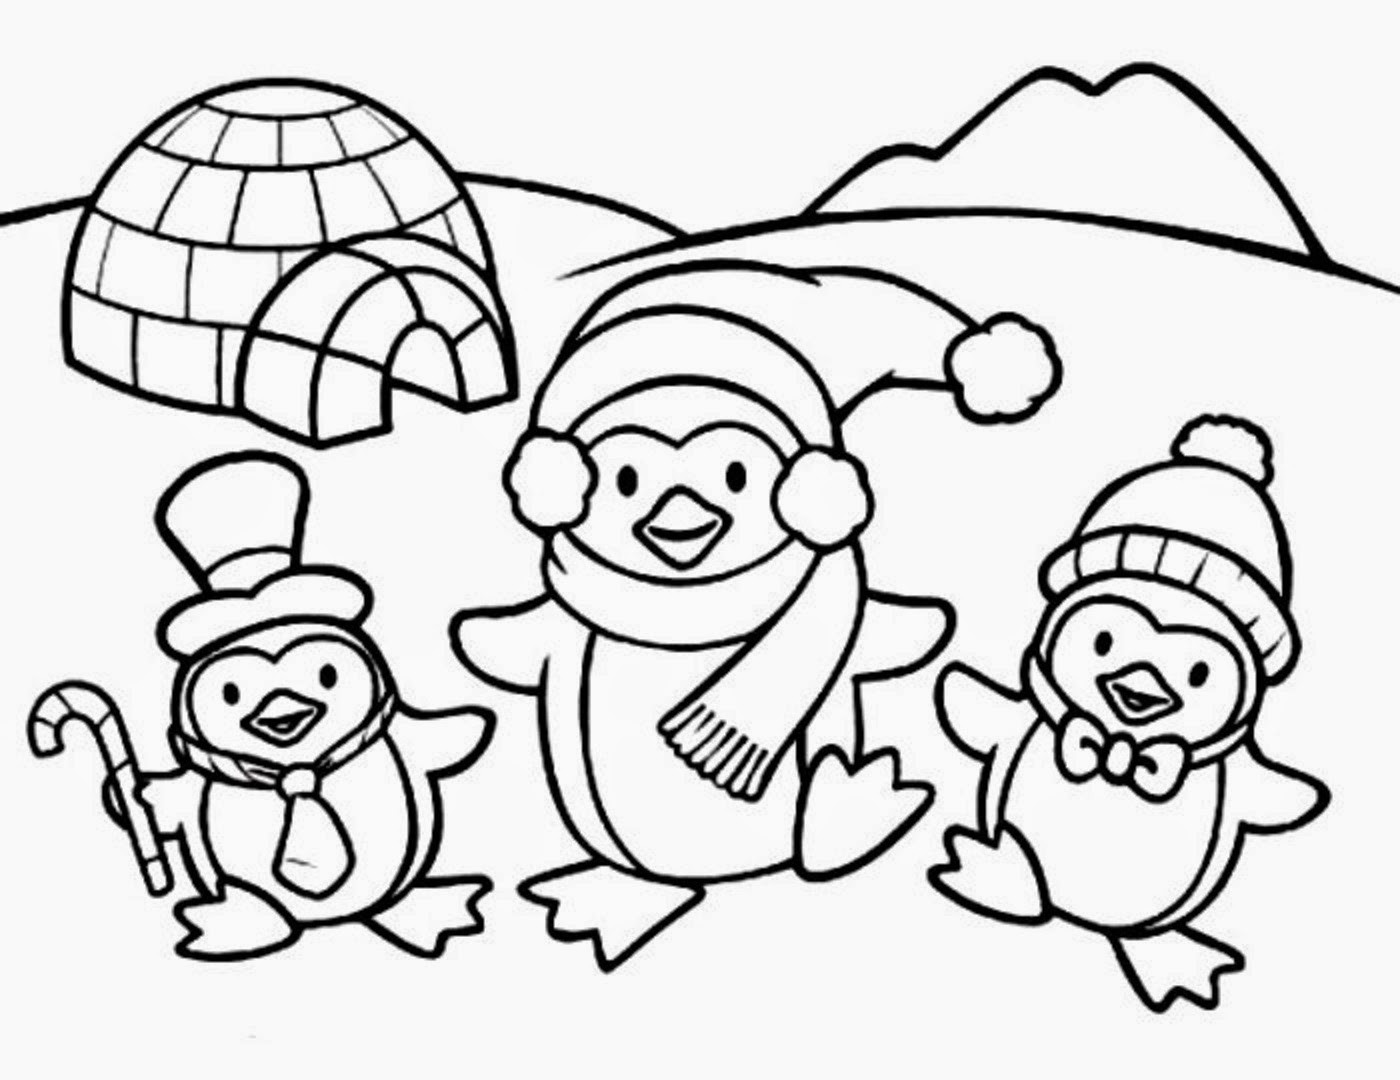 Baby Penguin Coloring Page  colours drawing wallpaper Cute Baby Penguin Colour